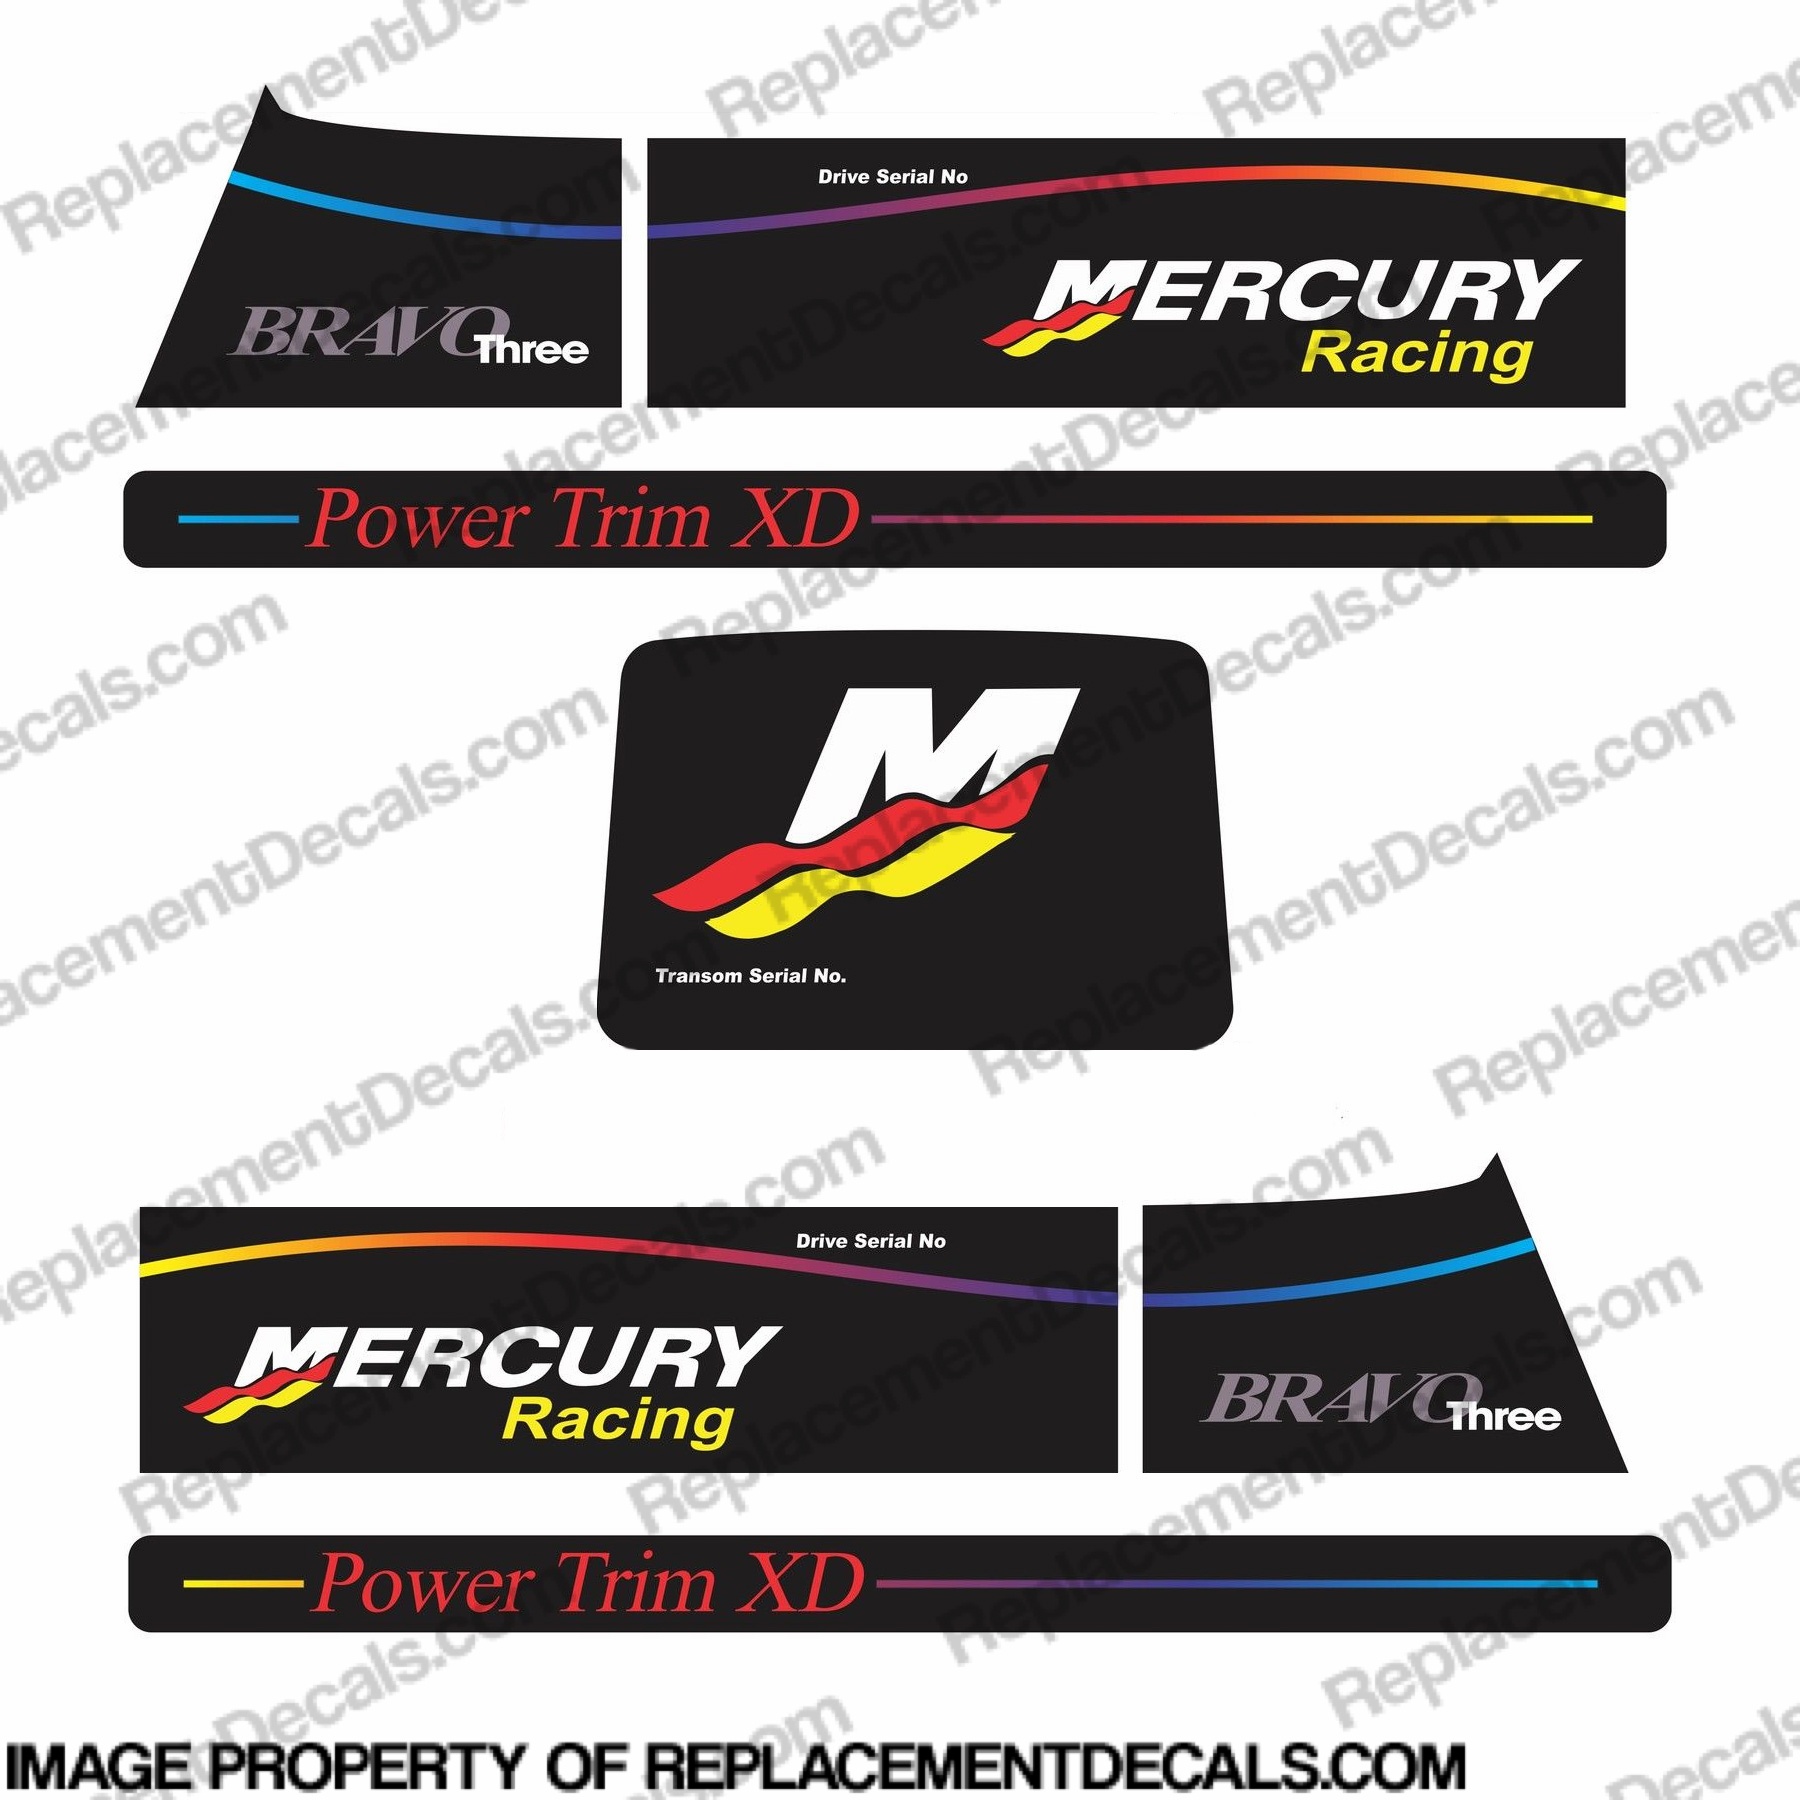 Mercruiser Bravo Three Racing Decals